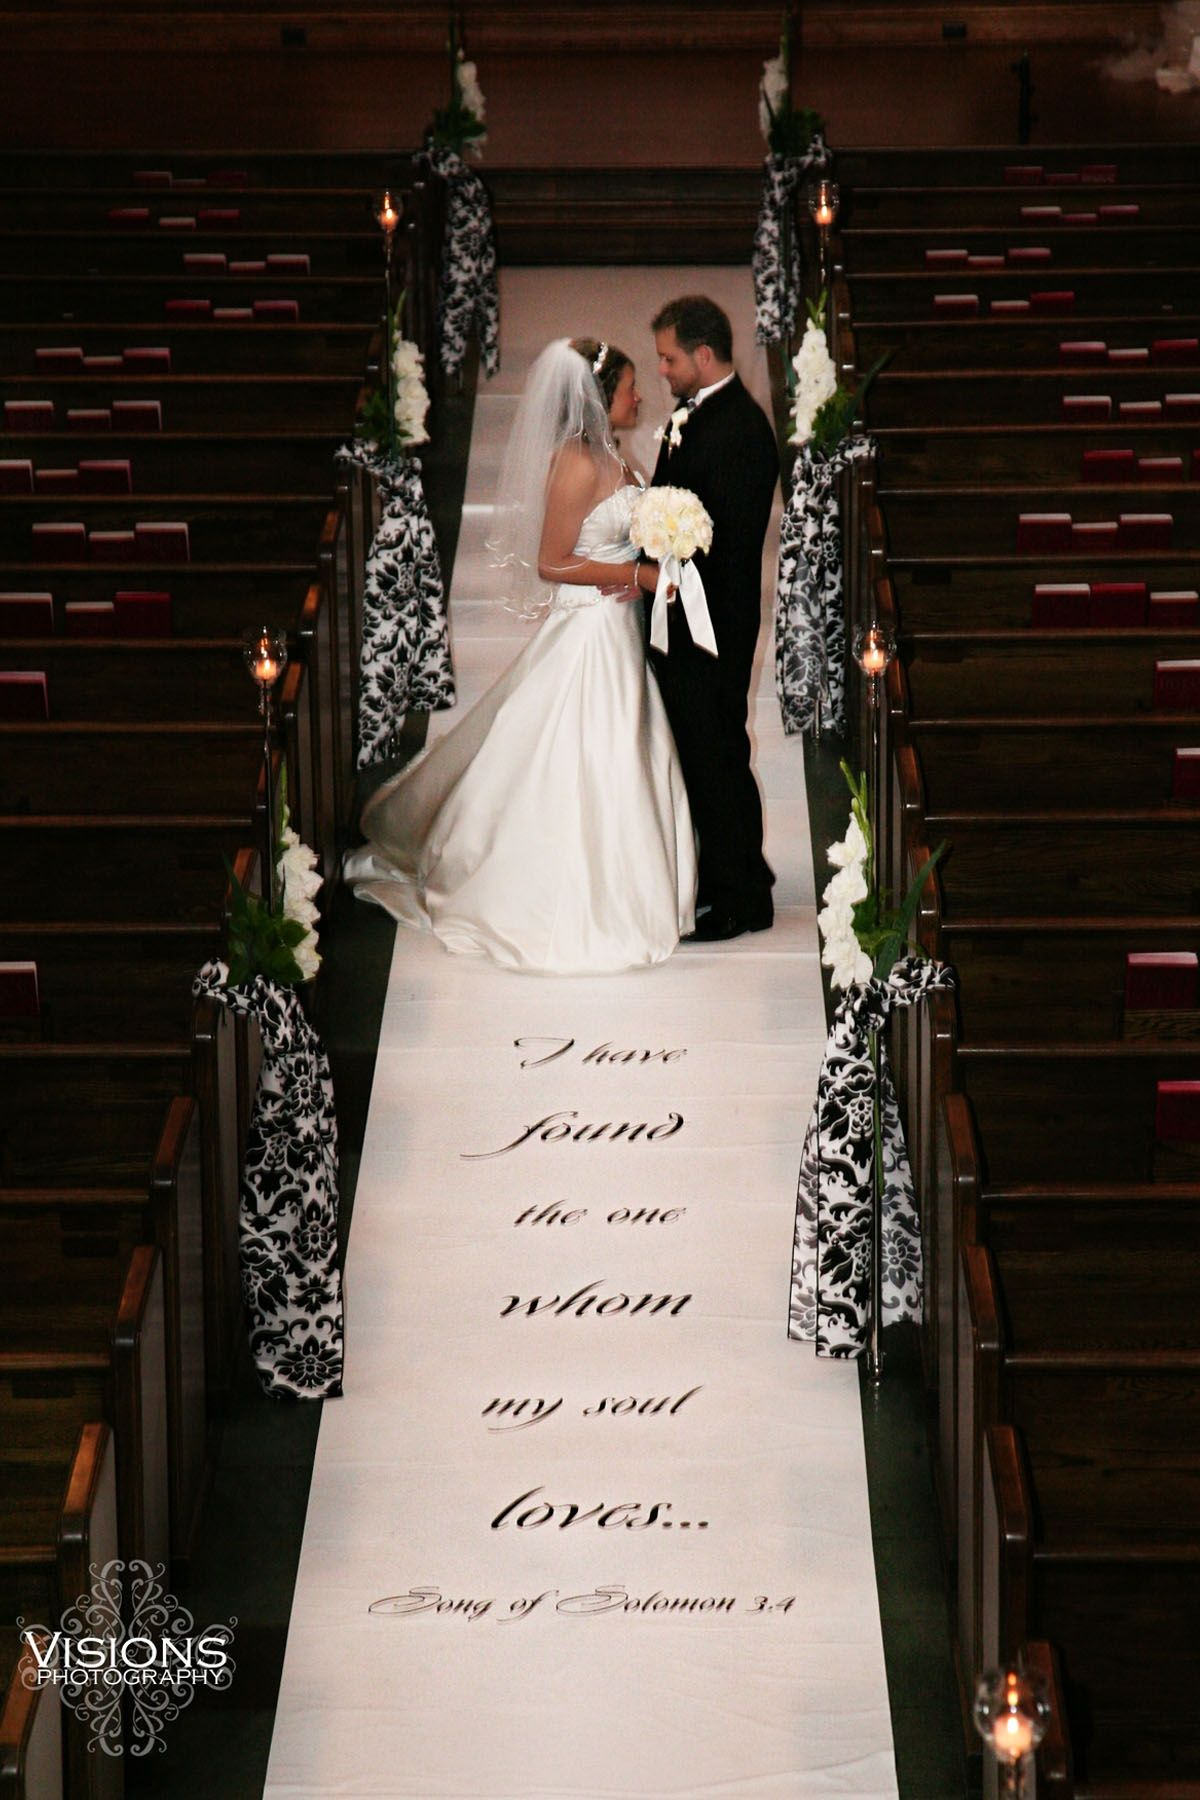 I Have Found The One Whom My Soul Loves Song Of Solomon We Specialize In Painting Scripture And Verse On Wedding Aisle Runners